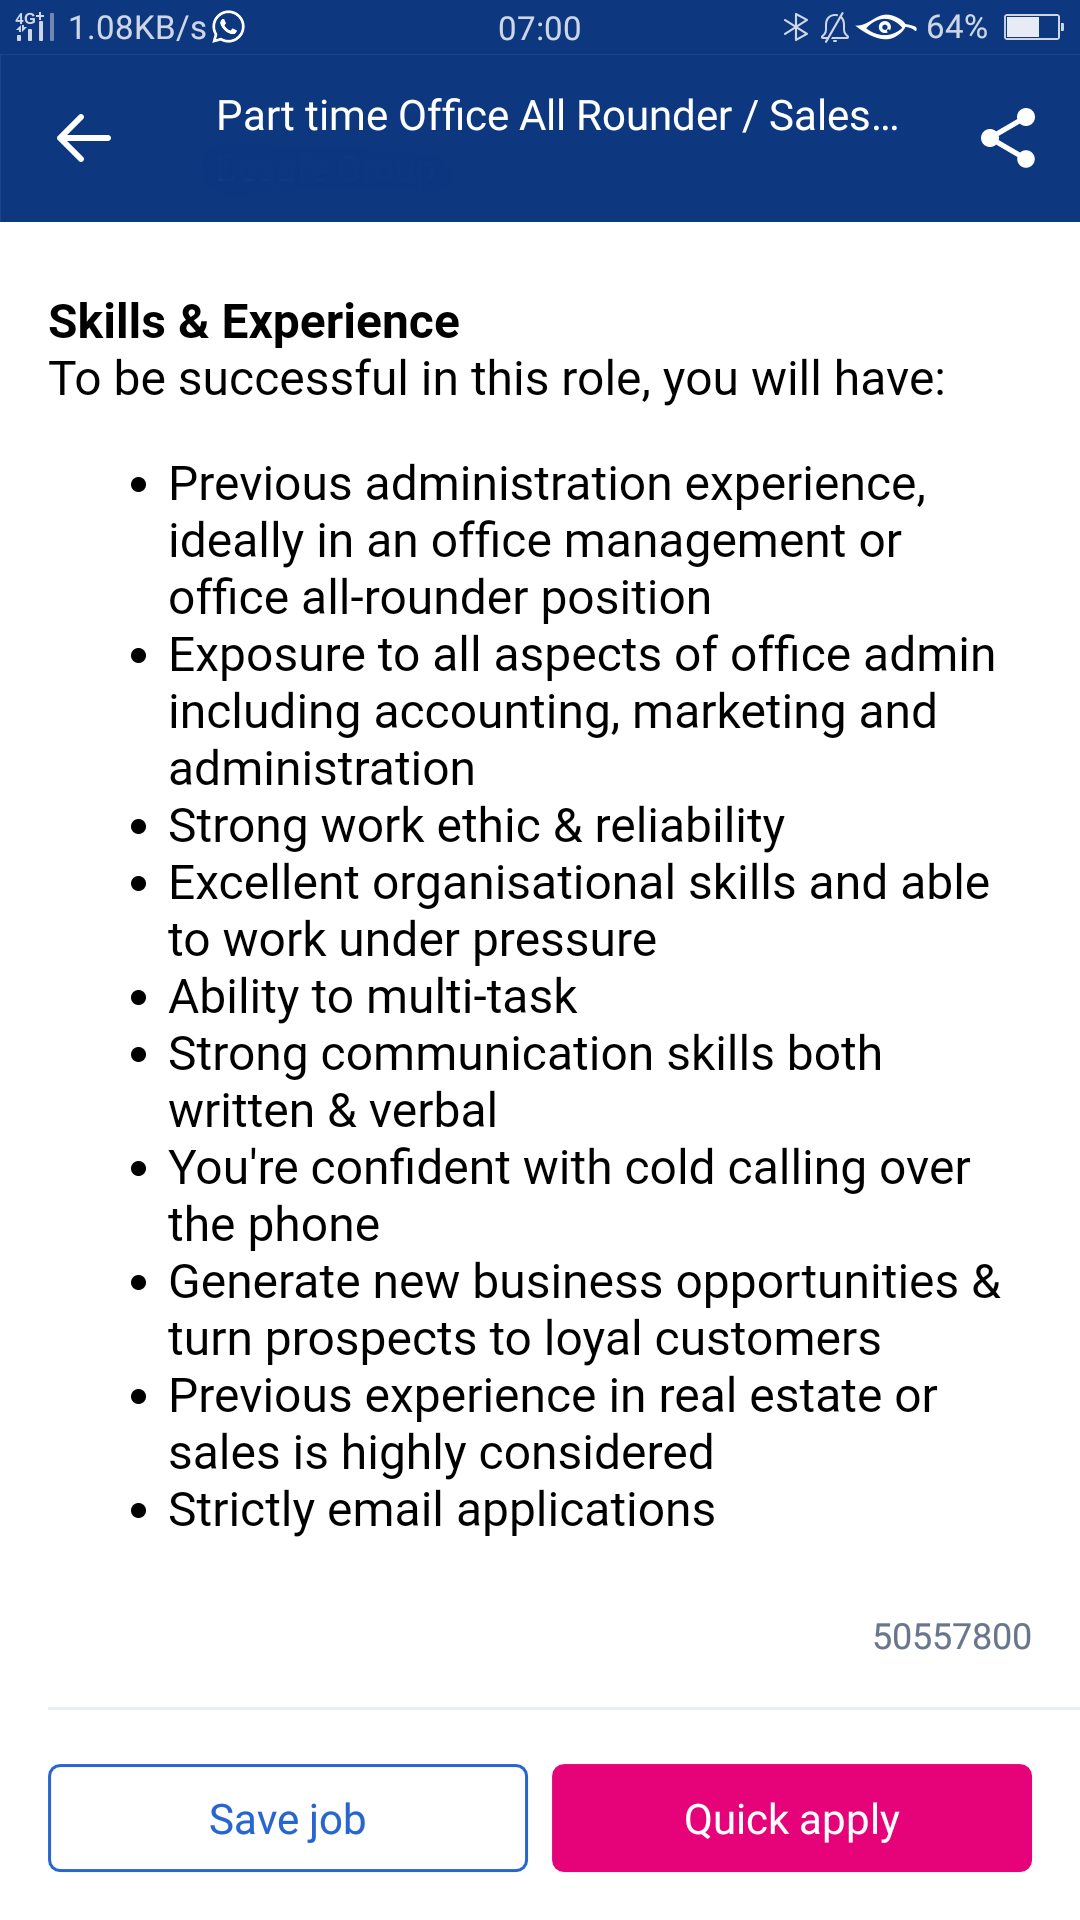 Skills and Experience for Office Admin Support Part time Job Ad in Sydney - Online Customer Service and Sales Training Courses